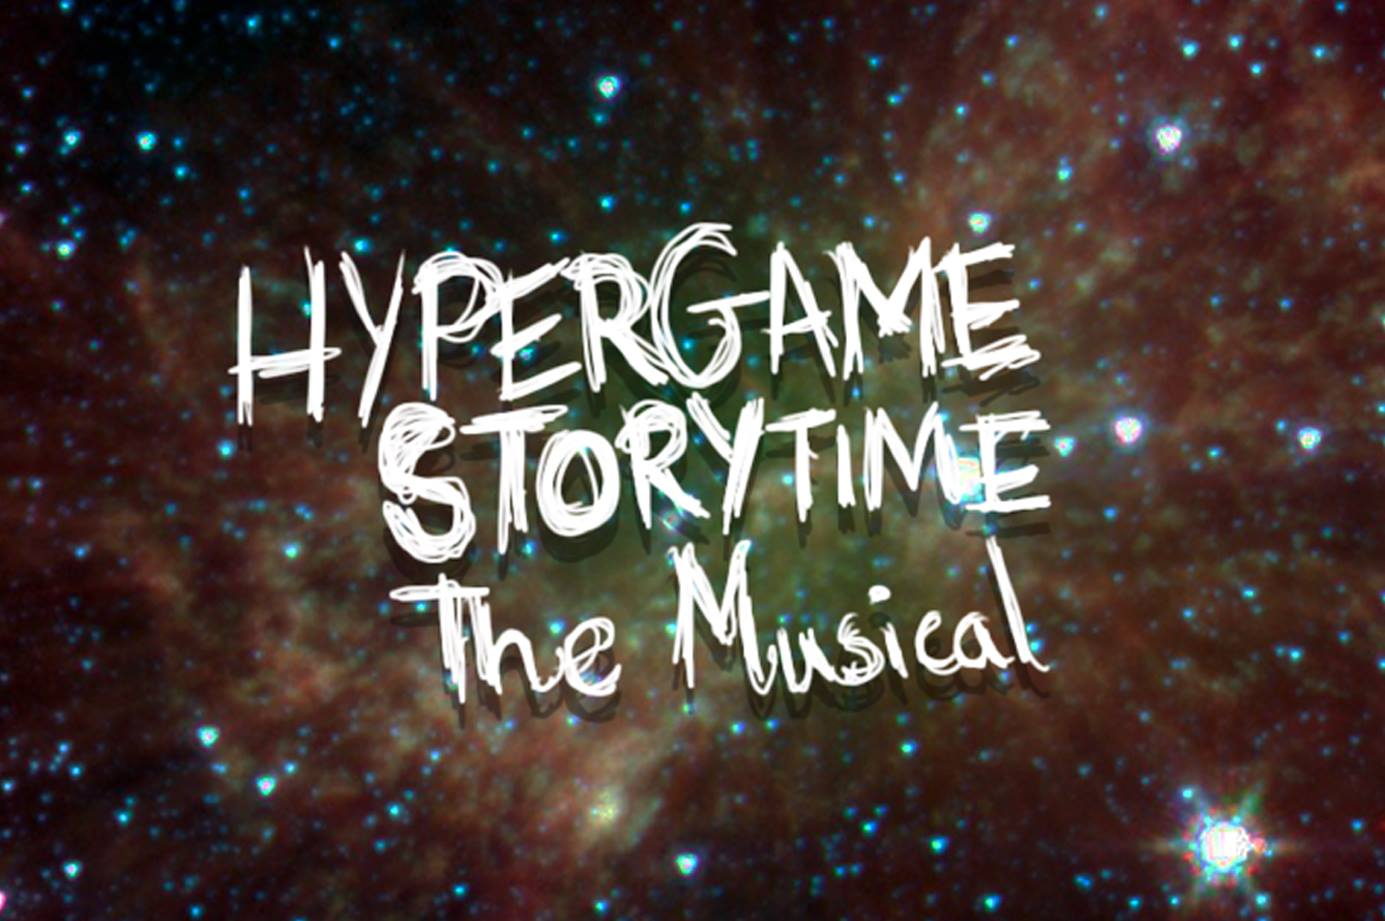 Hypergame Storytime: The Musical at Electric Perfume